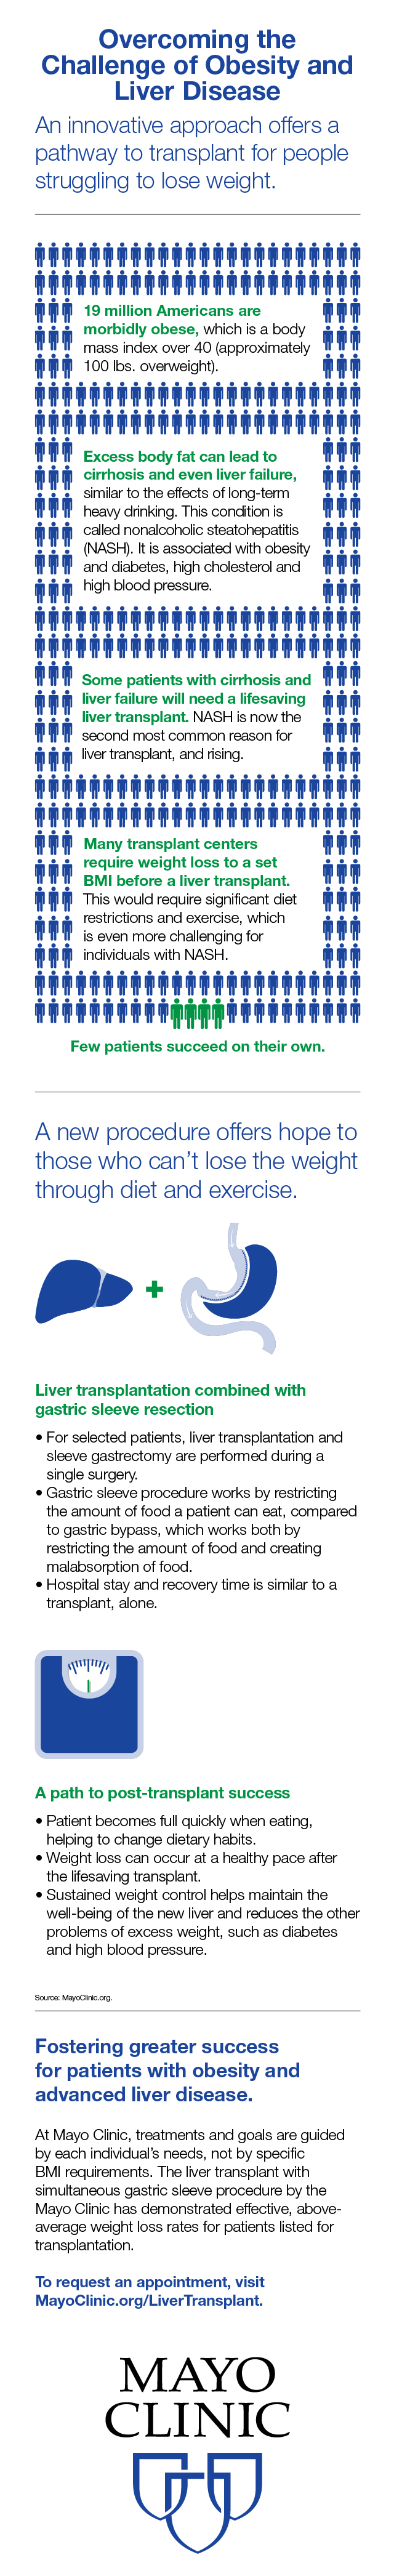 infographic for obesity and liver disease